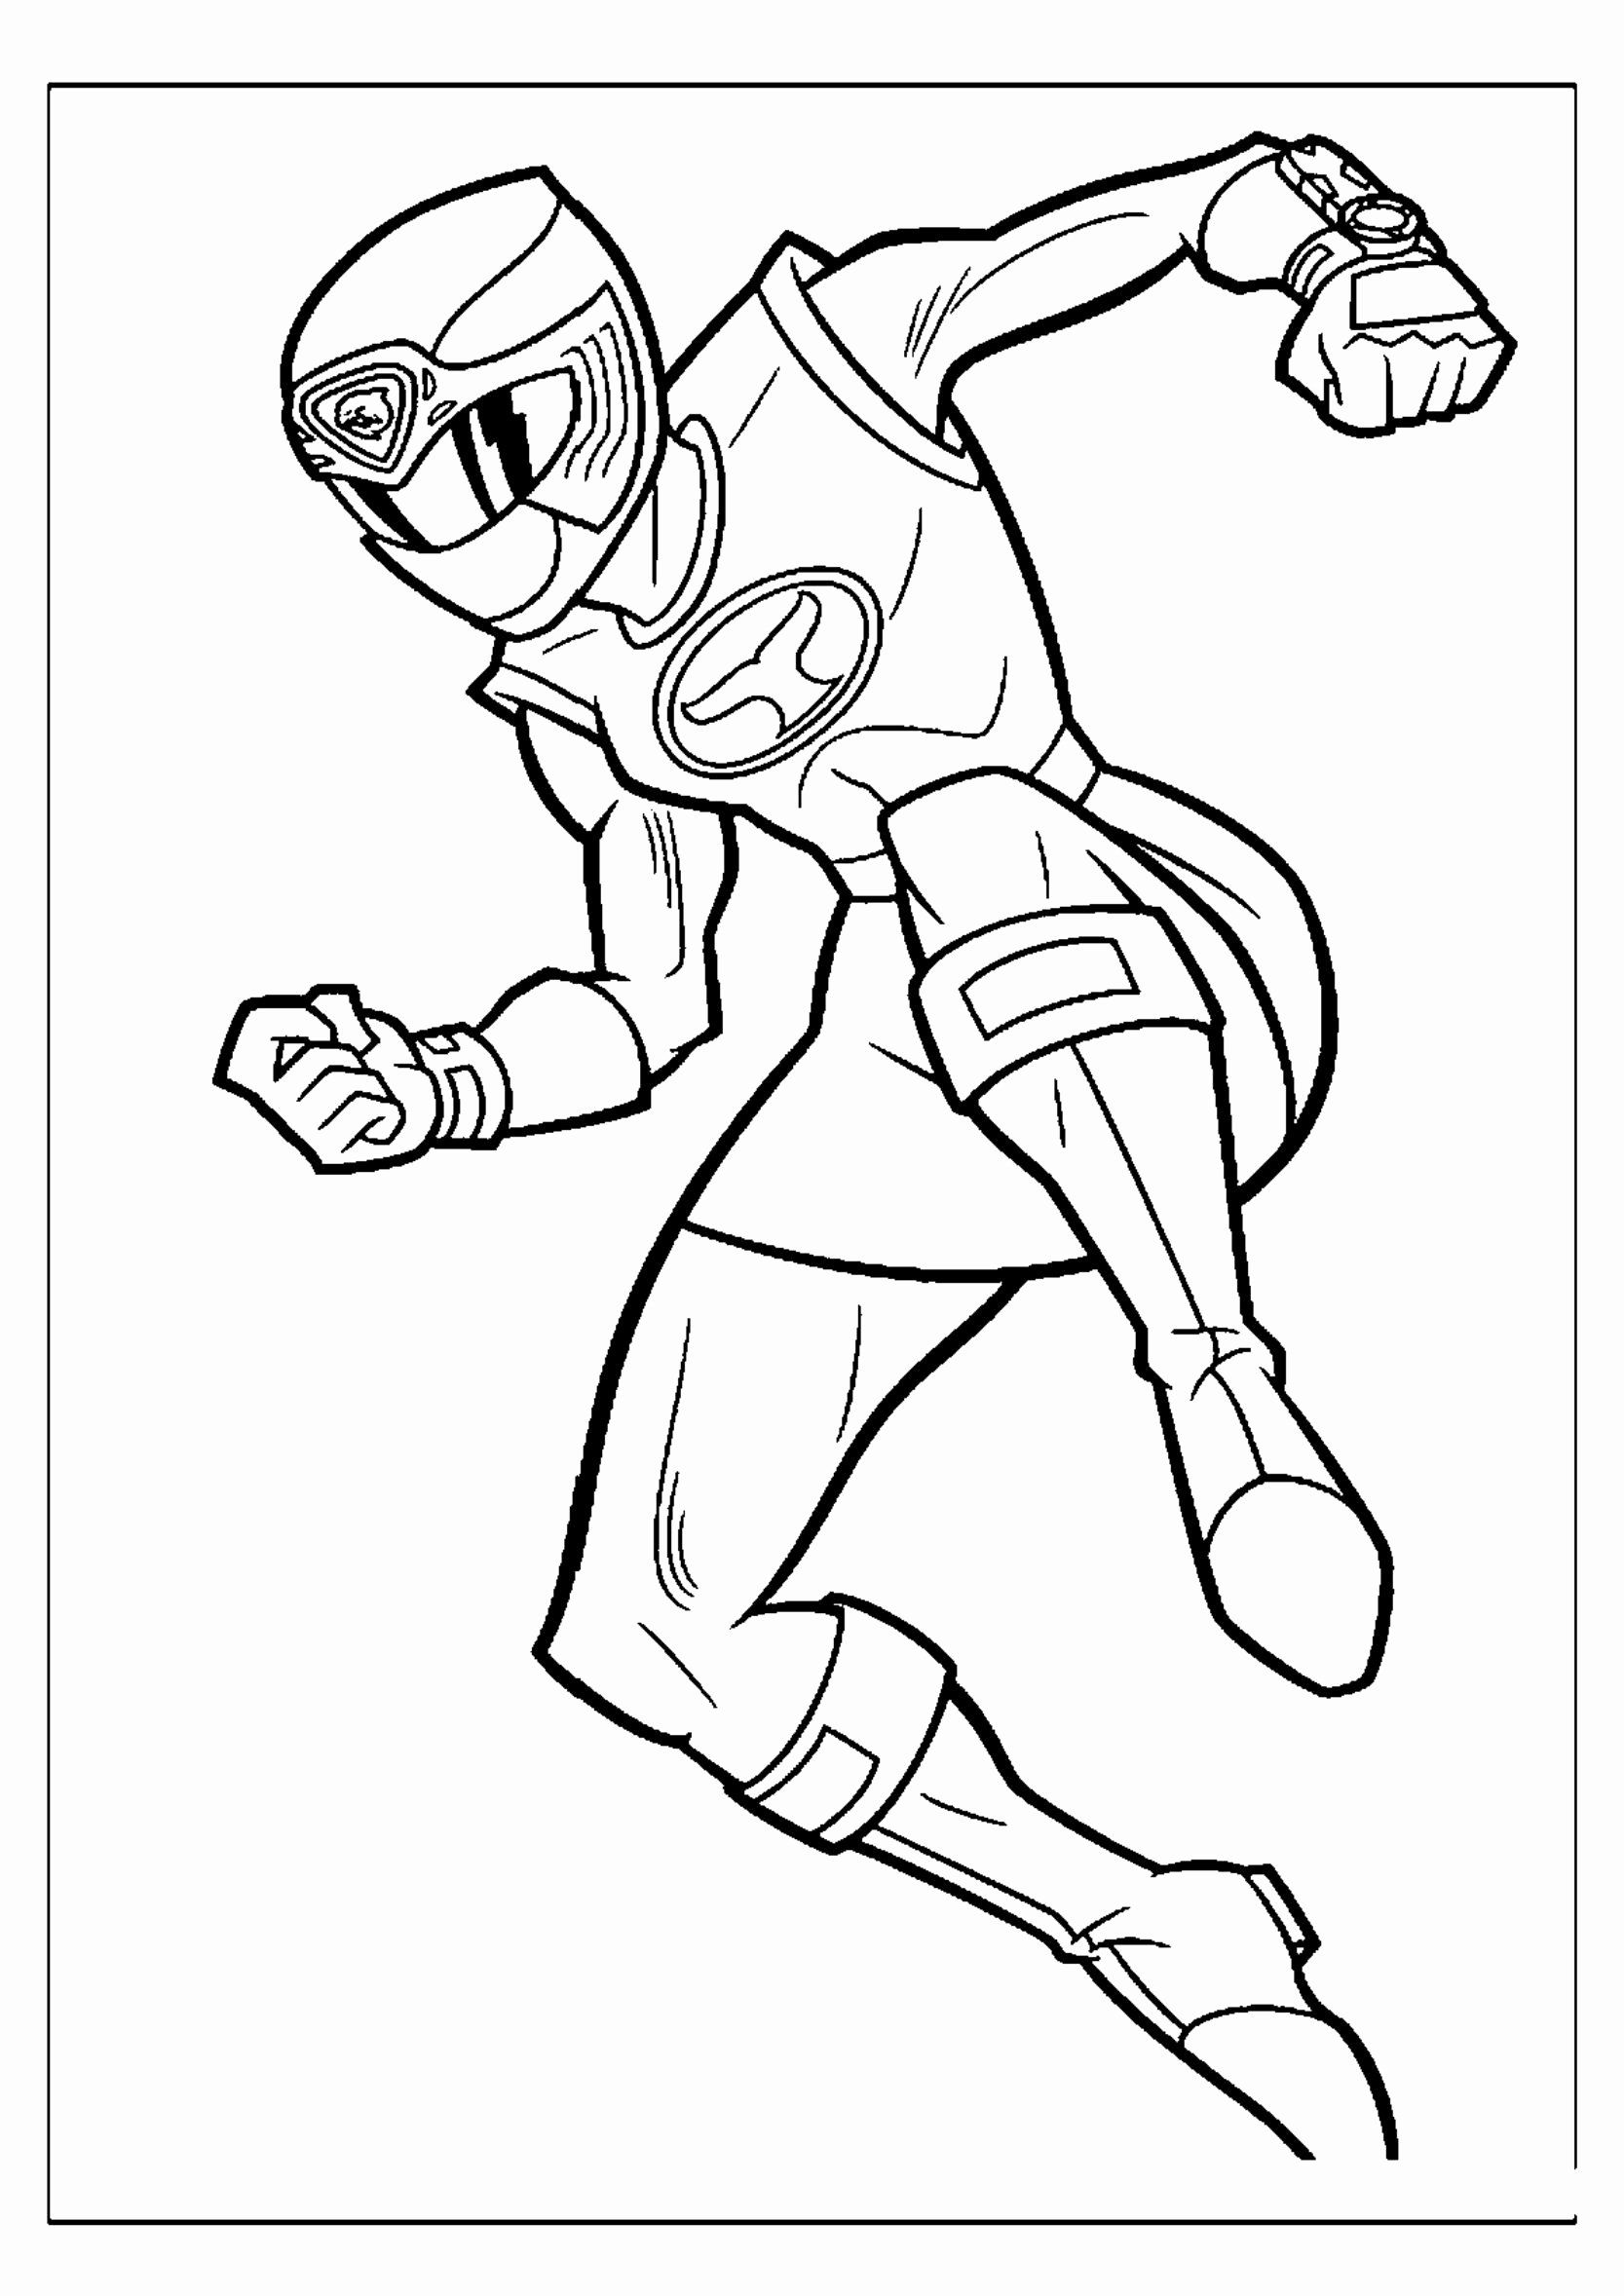 Power Rangers Coloring Book Fresh 24 Most Blue Chip Quicksilver Coloring Pages Power Range Power Rangers Coloring Pages Superhero Coloring Pages Coloring Books